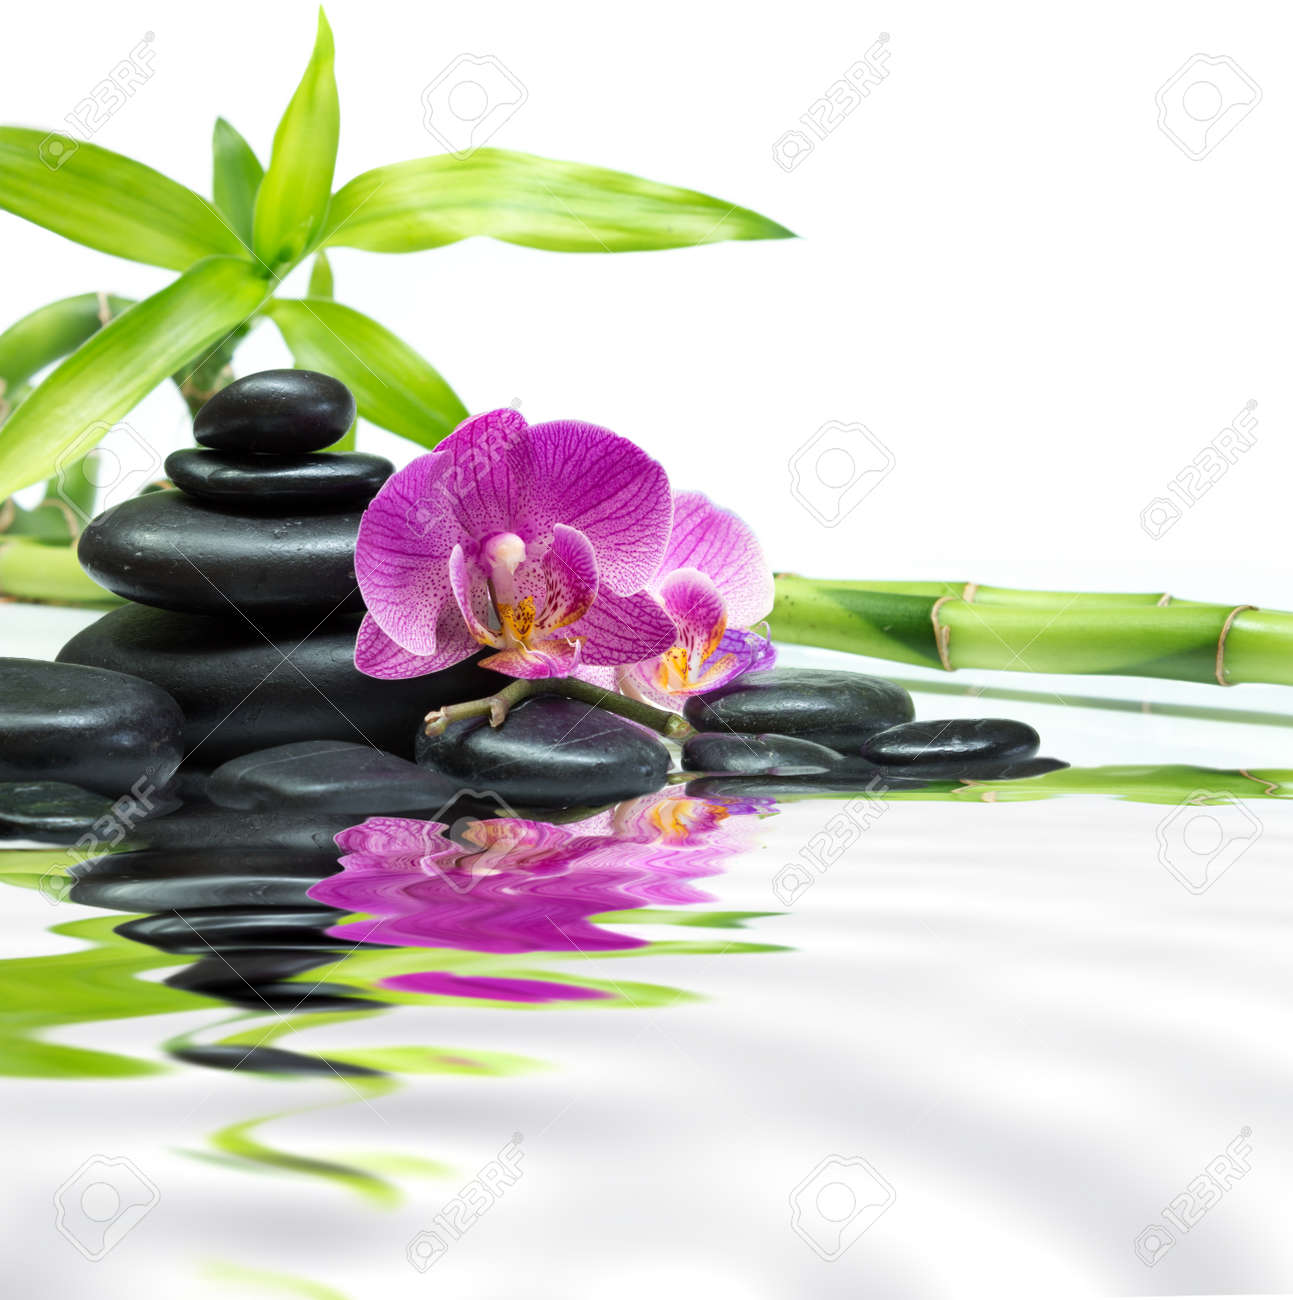 Habrumalas orchids in water wallpaper images - Water Orchid Stock Photos Images Royalty Free Water Orchid Images